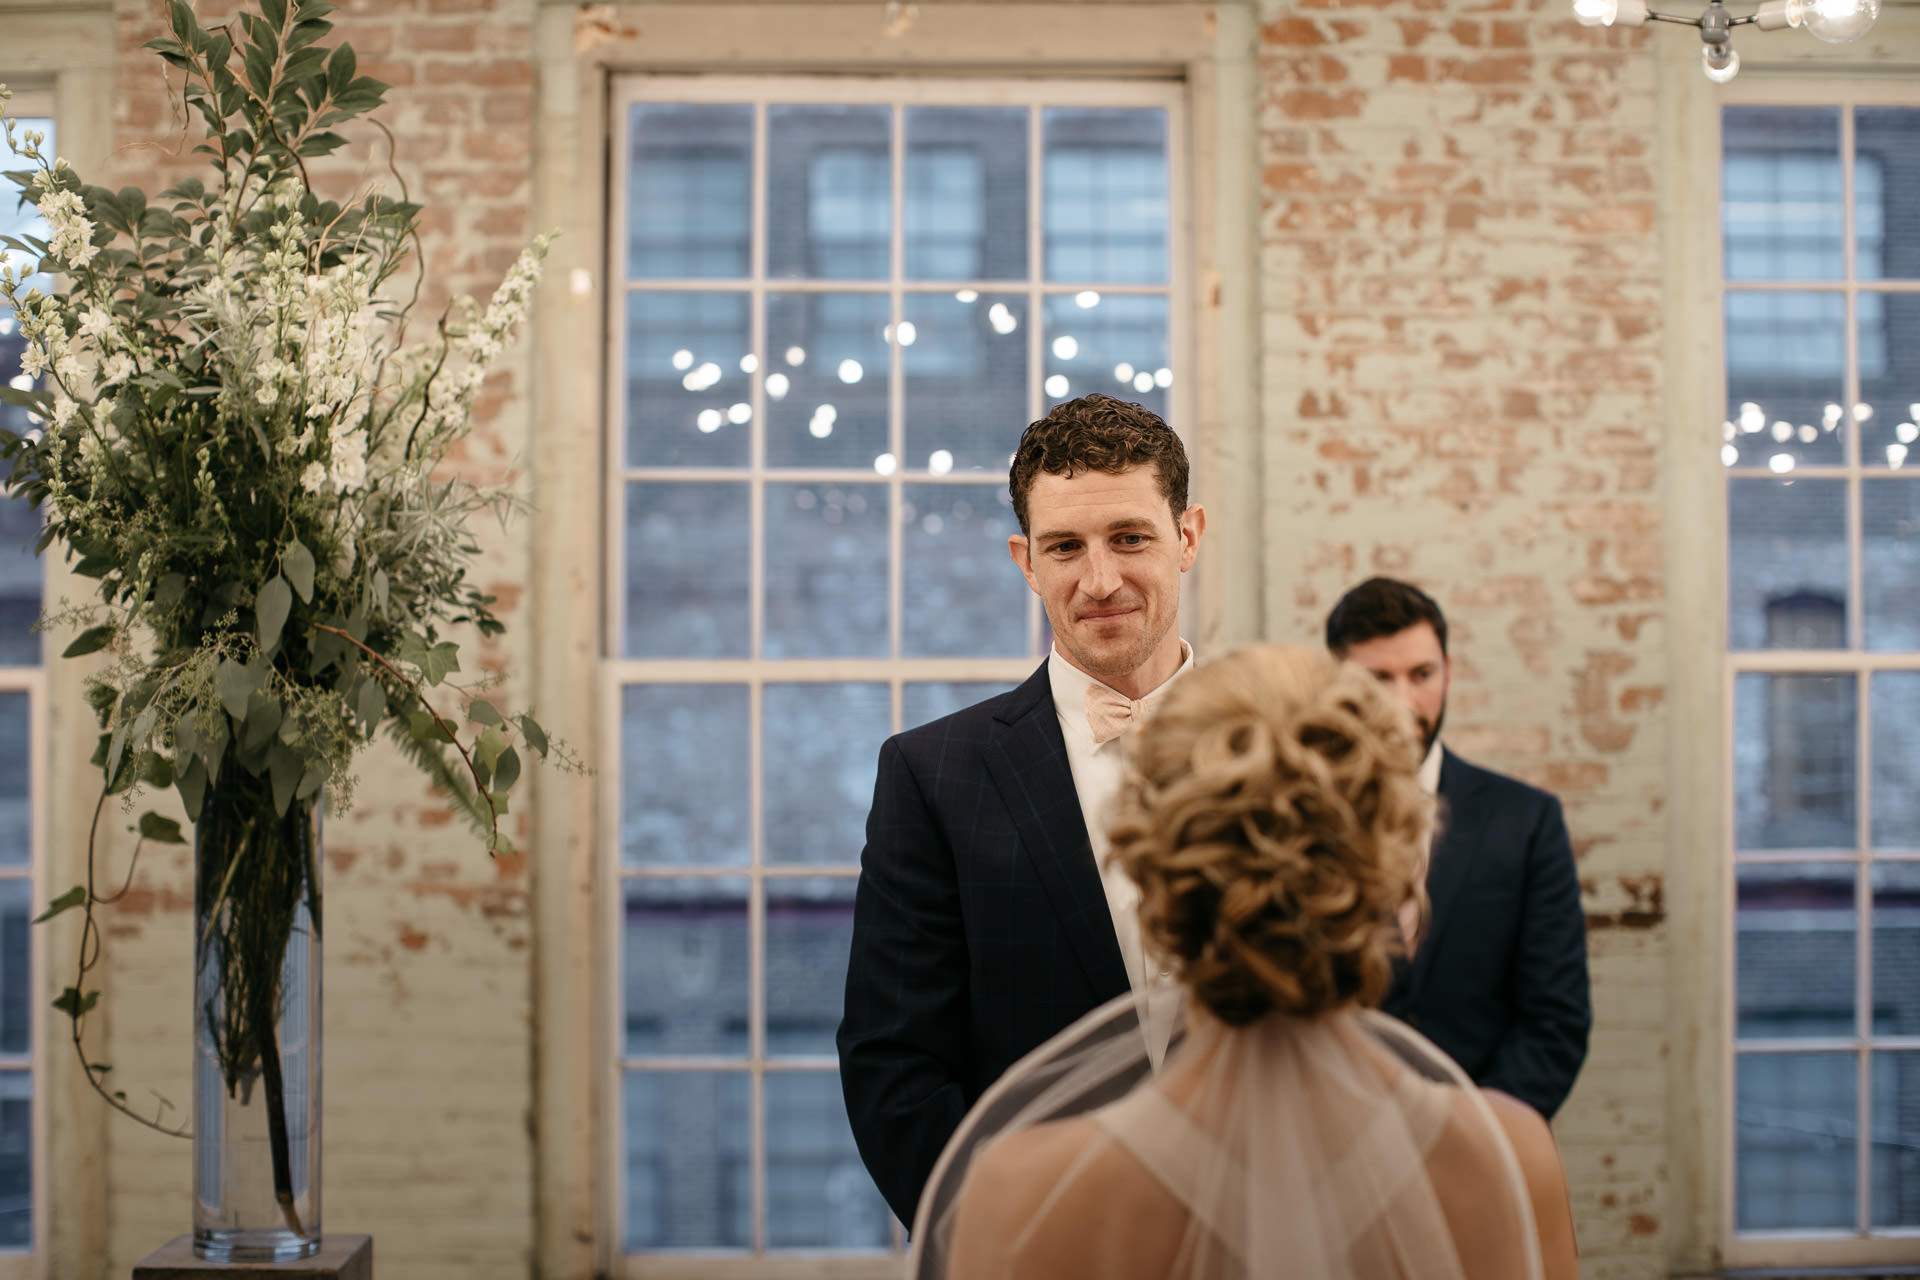 Massachusetts Wedding Photographer . Mass Moca Museum Wedding in North Adams by Jean-Laurent Gaudy